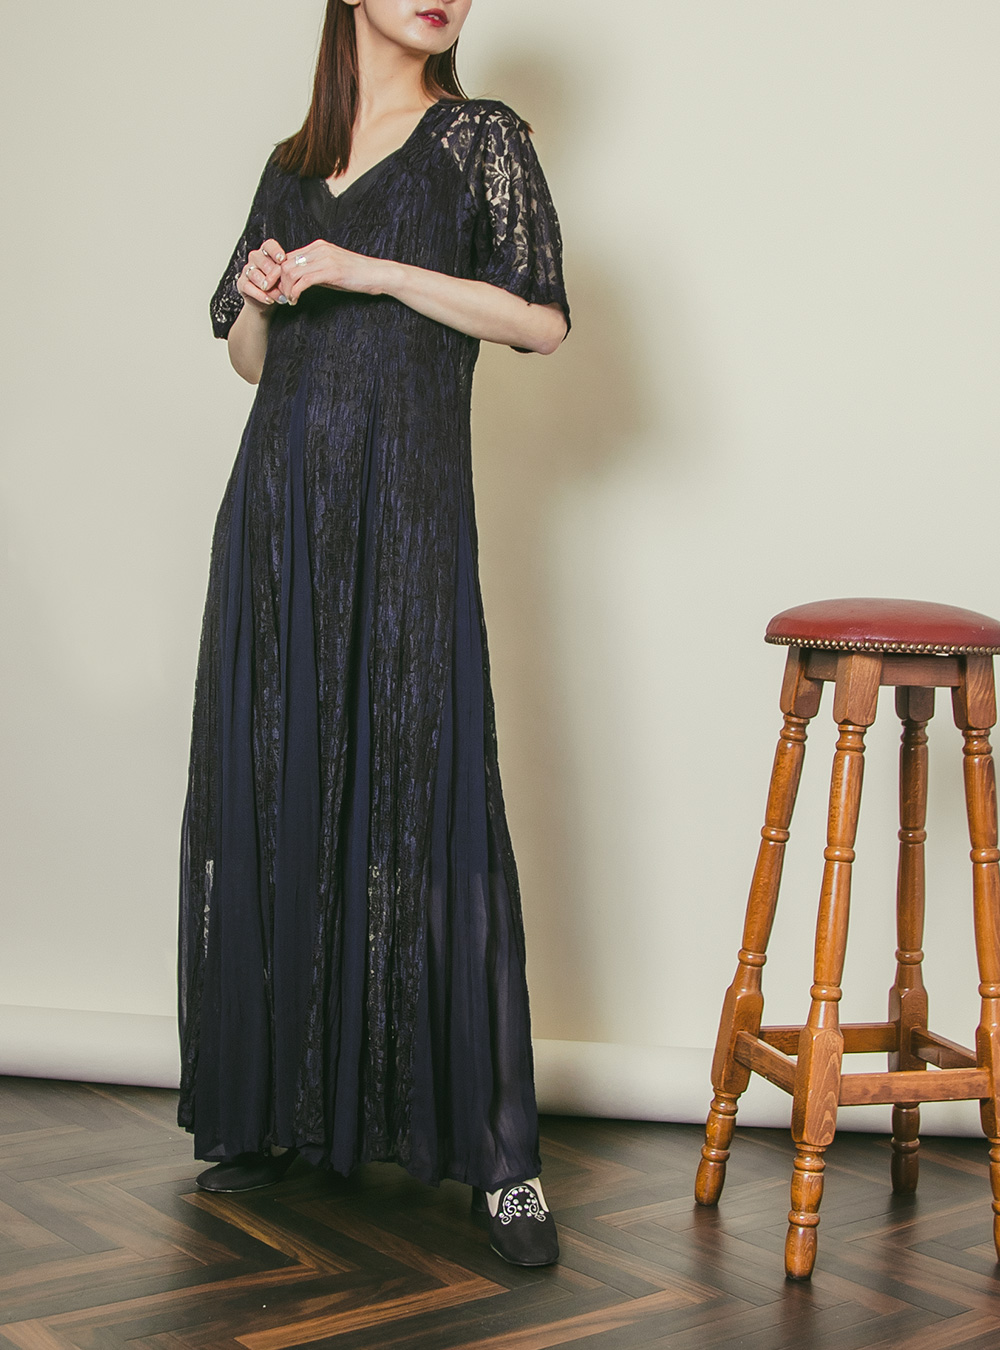 Black × Navy Lace Dress